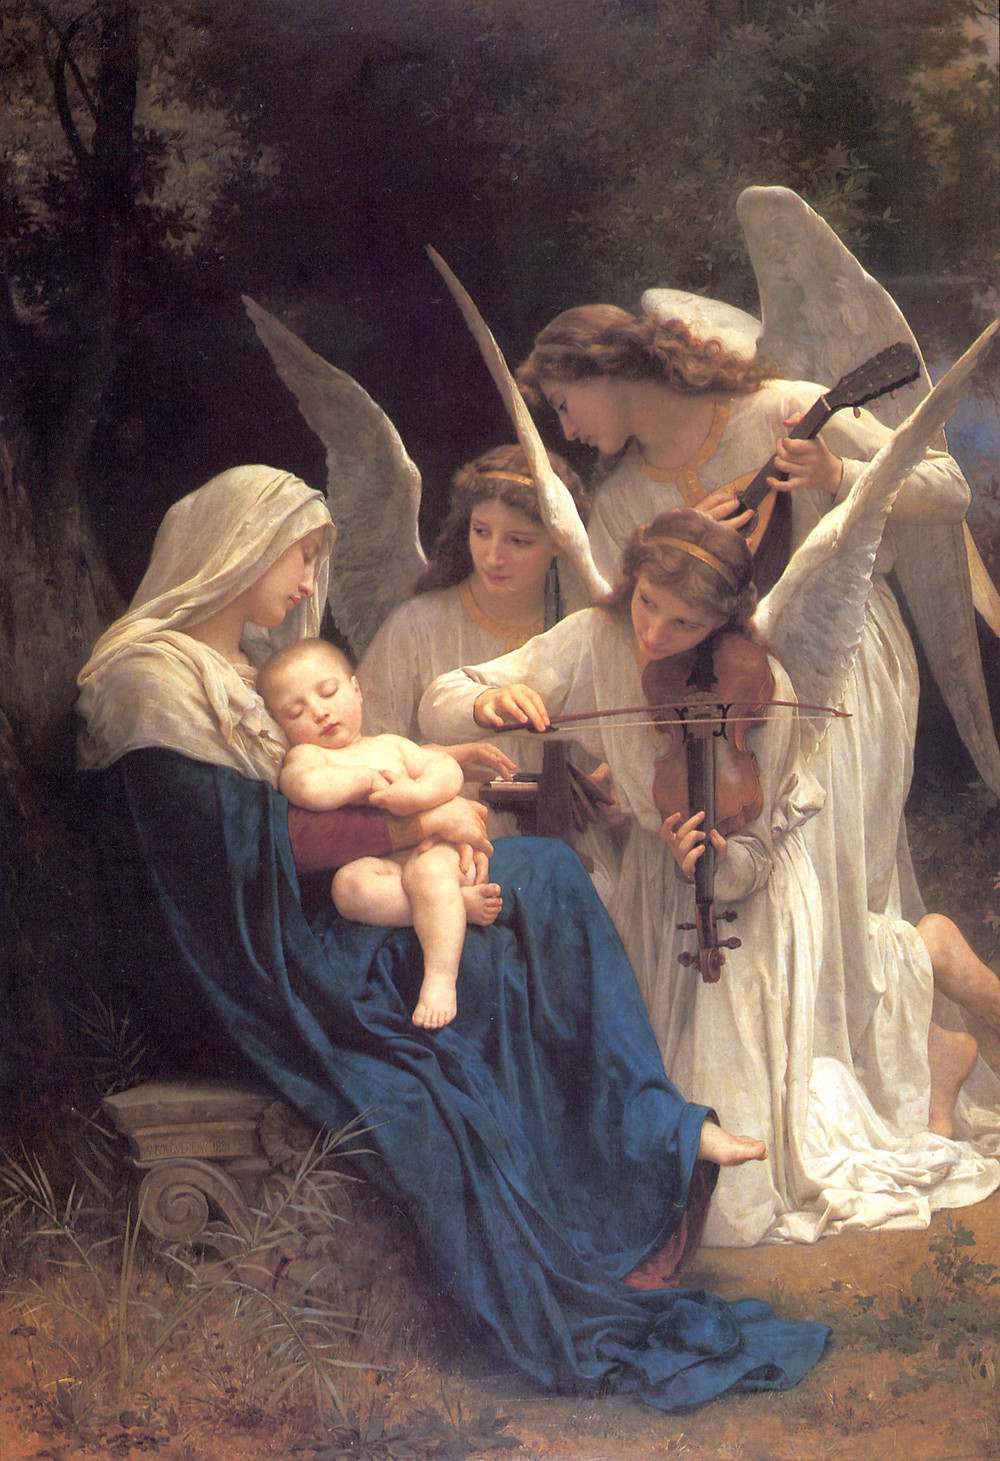 Songs of the angels oil on canvas painting with mary and jesus and 3 angels making music classic realism art by William Aldolphe-Bouguereau 1881 from Natural Pigments of California Silver Oak Art